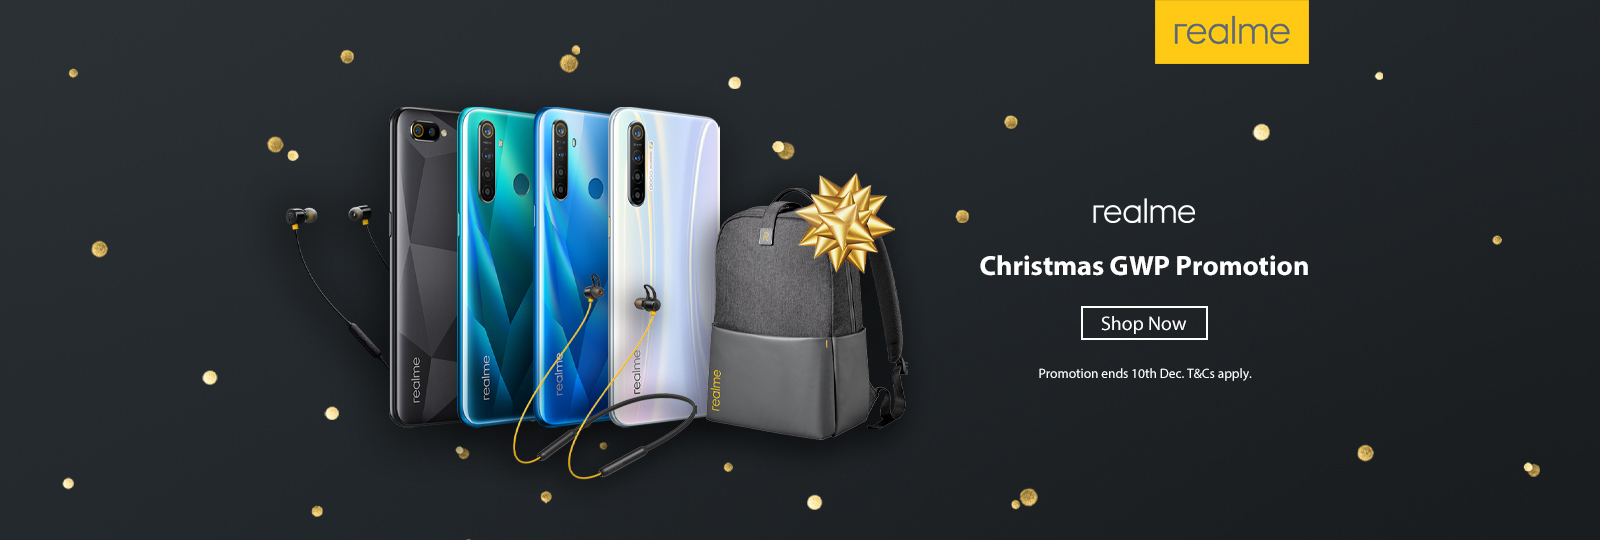 realme Christmas GWP Promotion